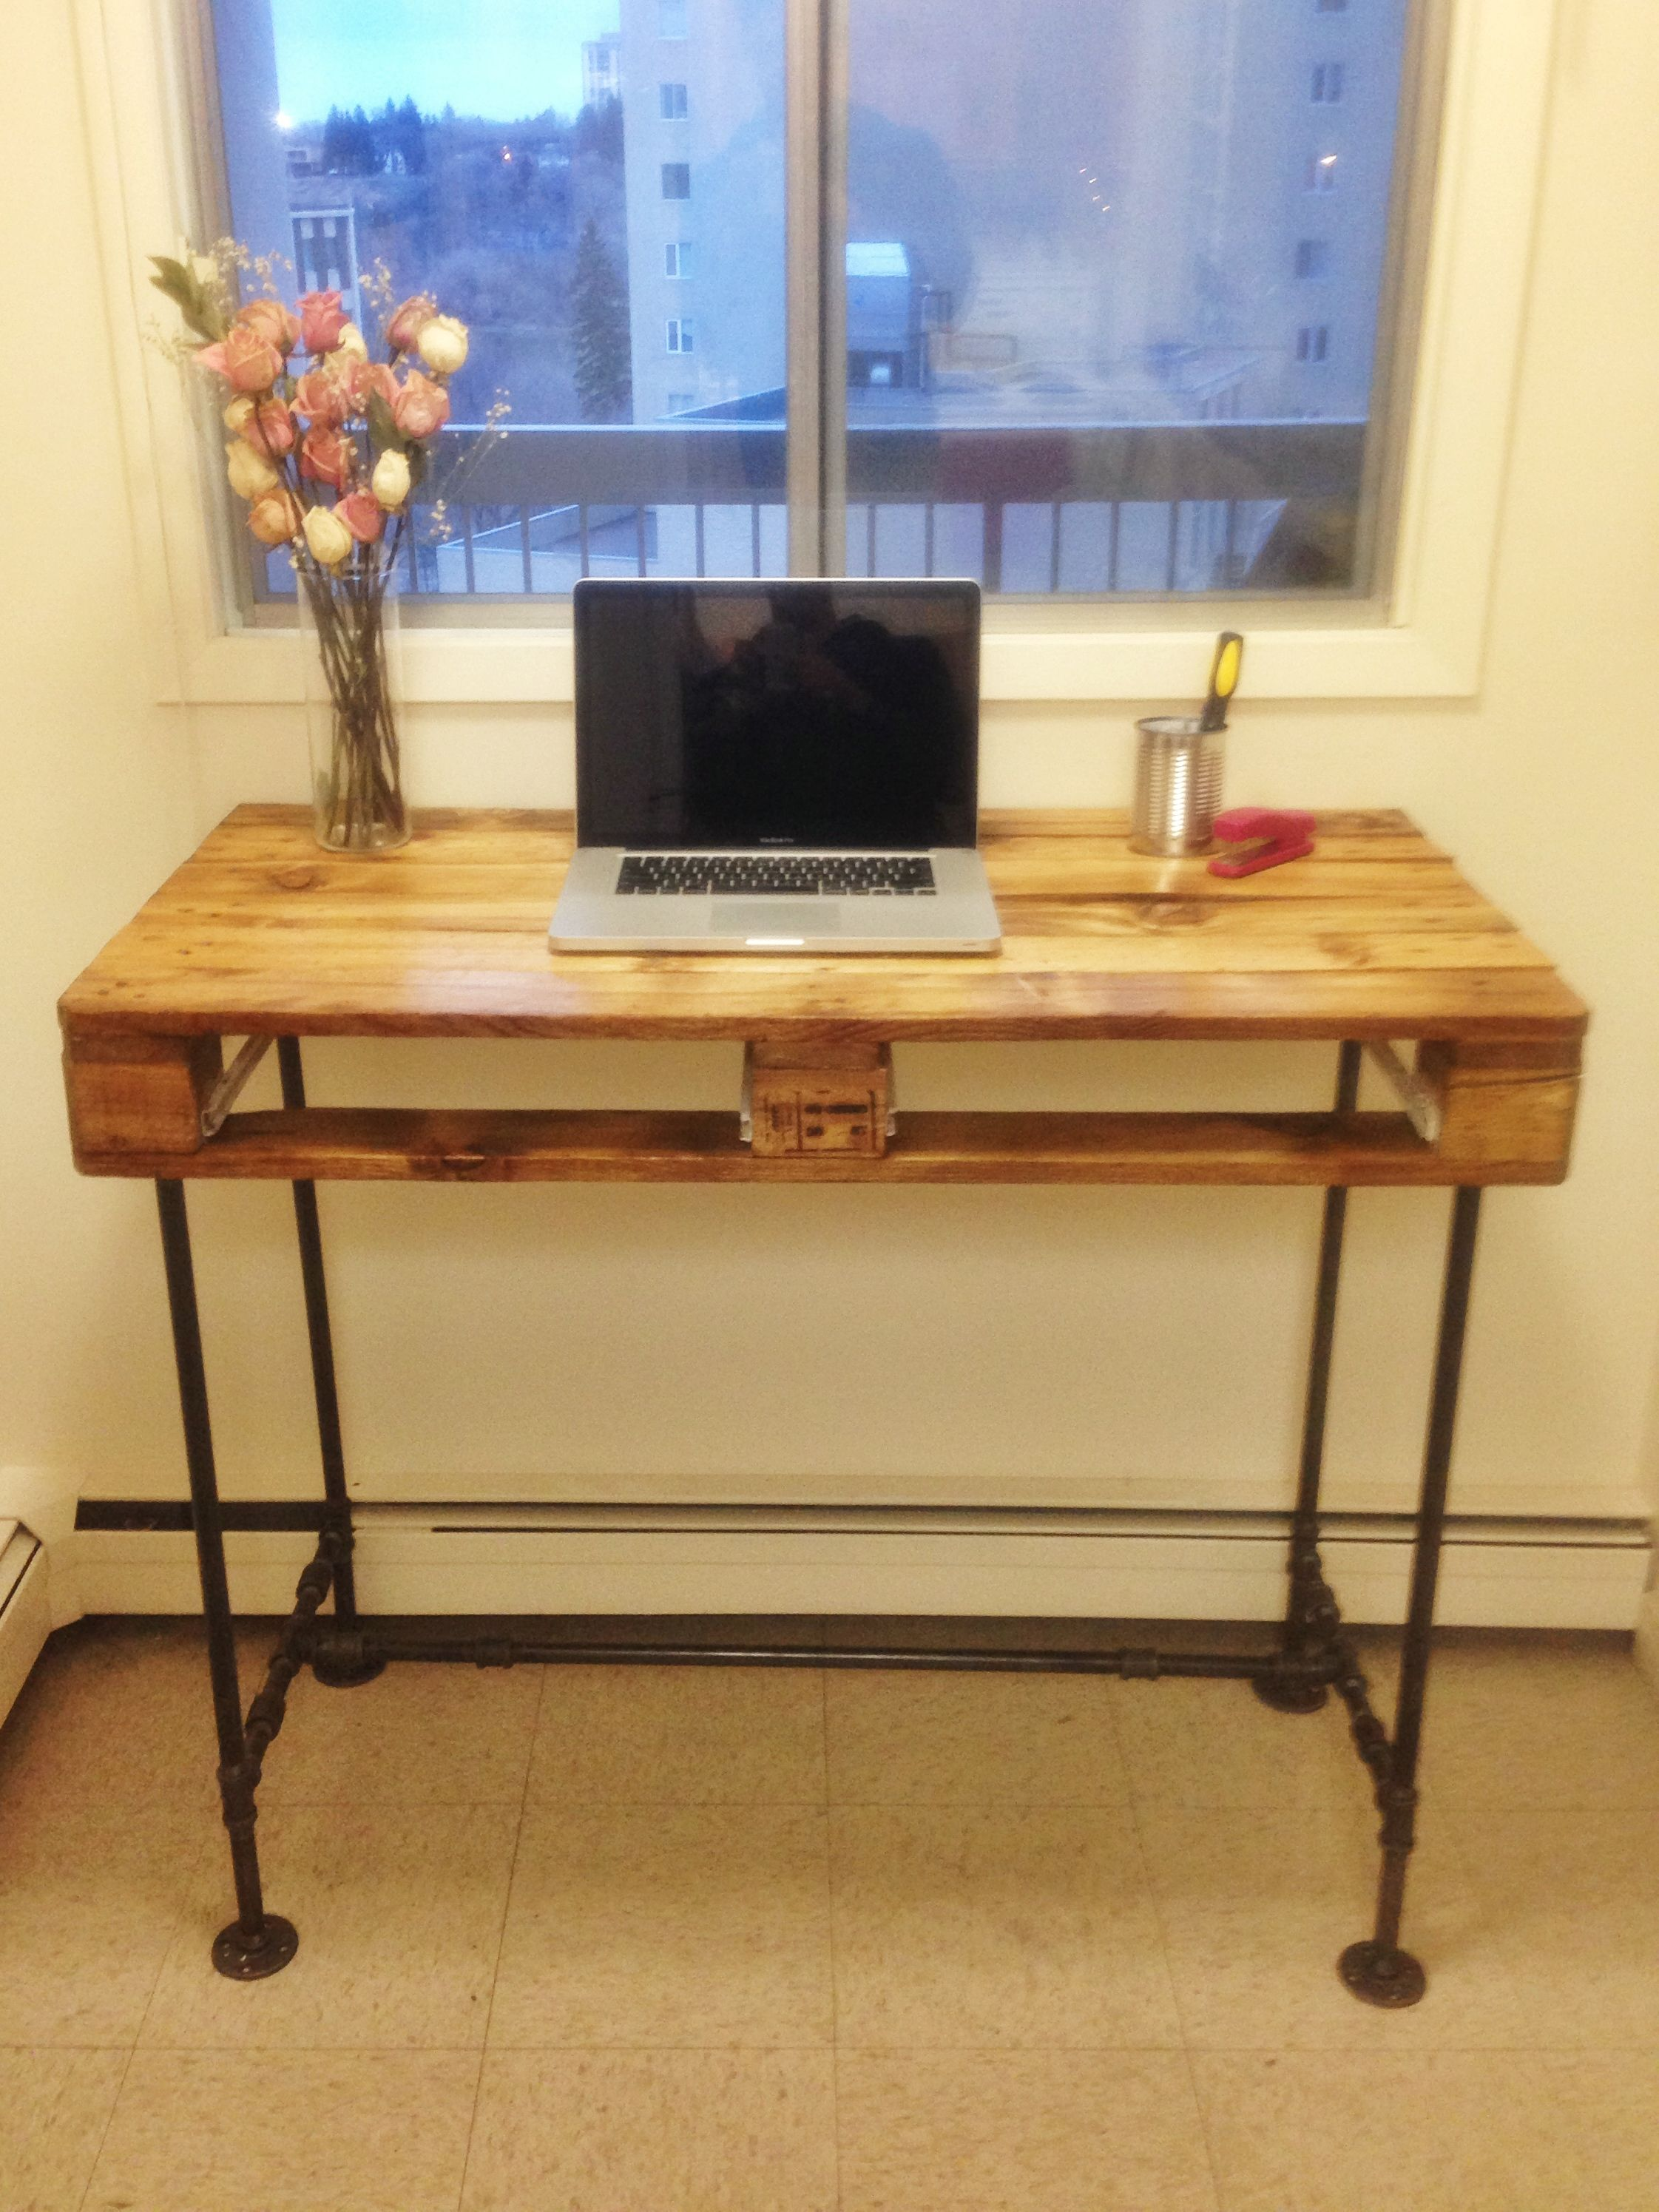 Pin by James Thiessen on My DIY's Pallet desk, Pallet